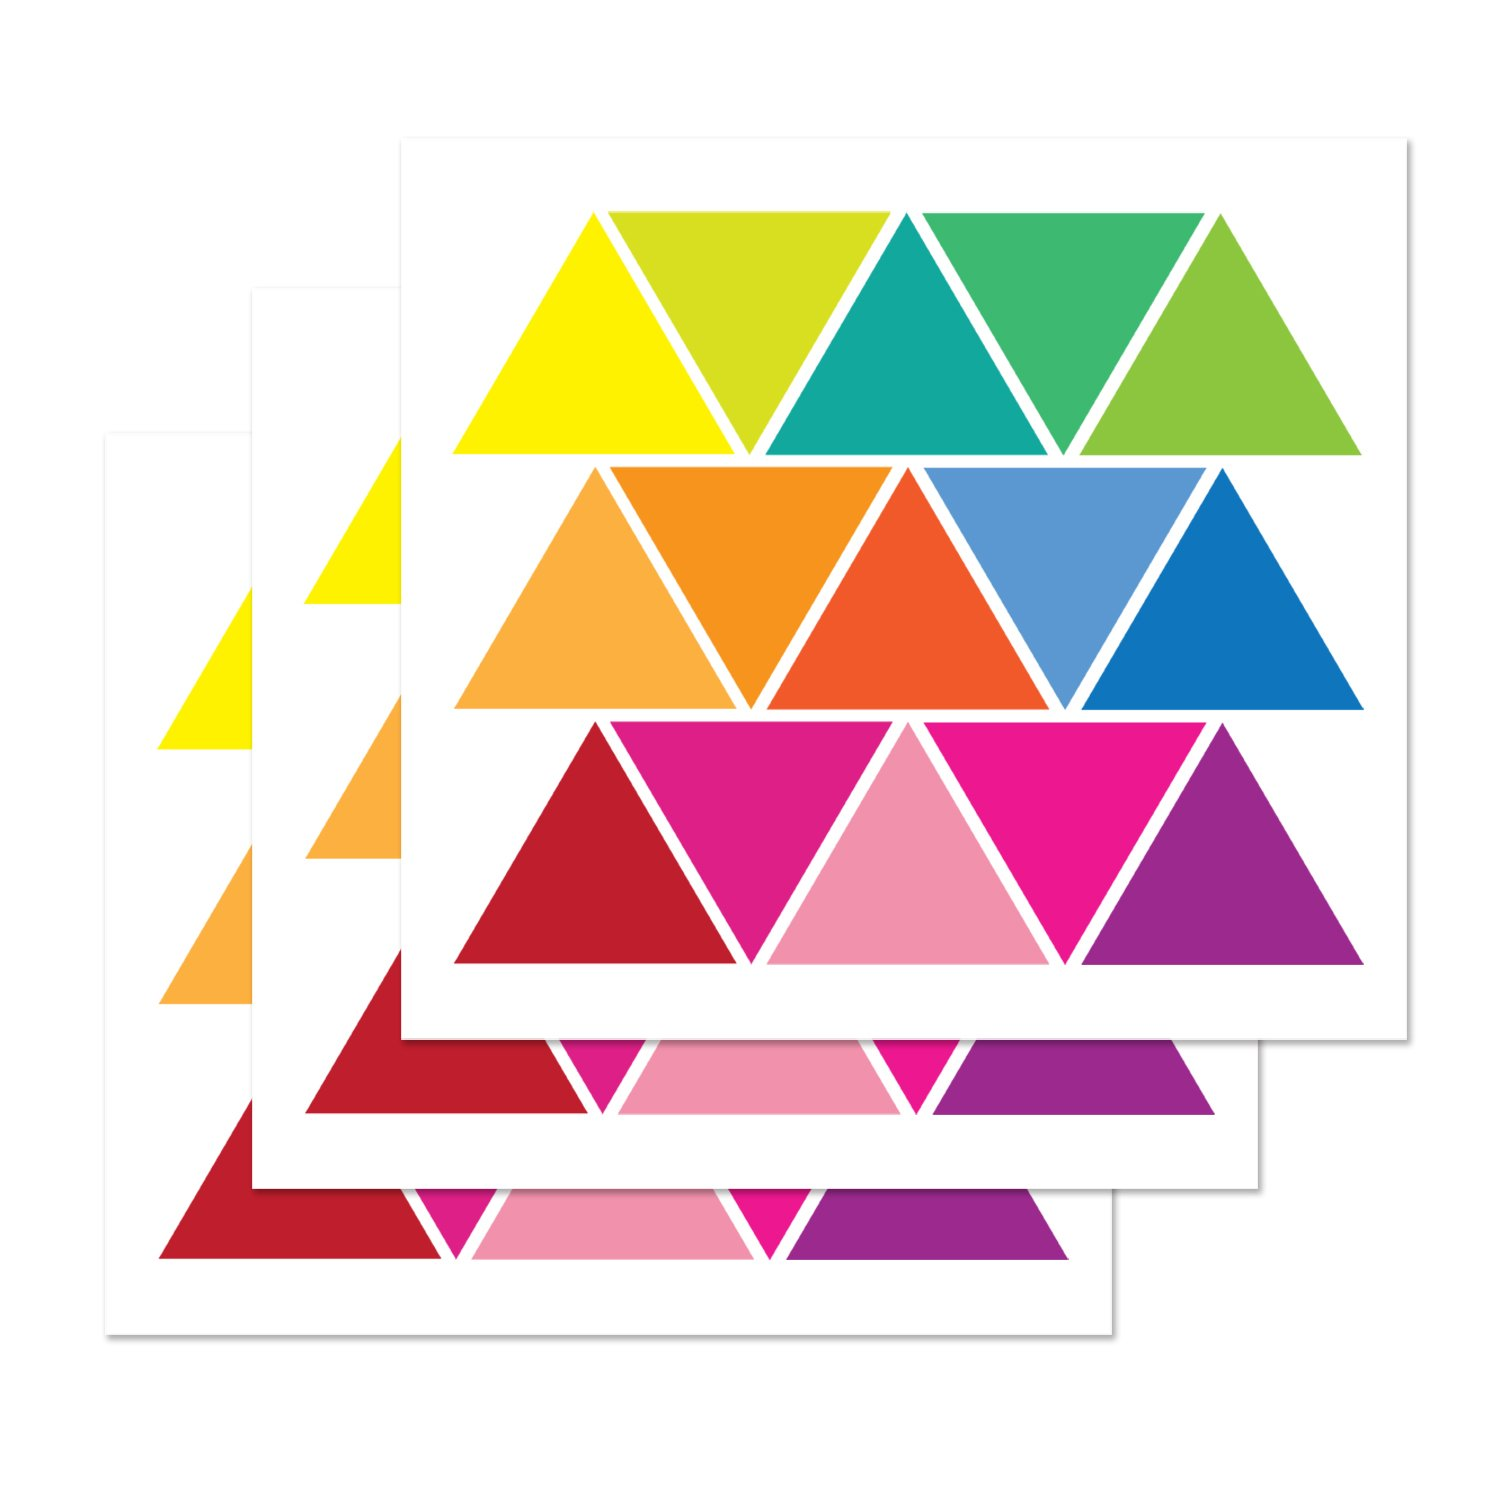 PARLAIM 45 Mod Multi-Color Triangle Wall Decals Peel and Stick Eco-Friendly Reusable Wall Stickers with Gift Packaging for Kids Room,Living Room,Bedroom TianLiCheng 3.4 x 3 inch